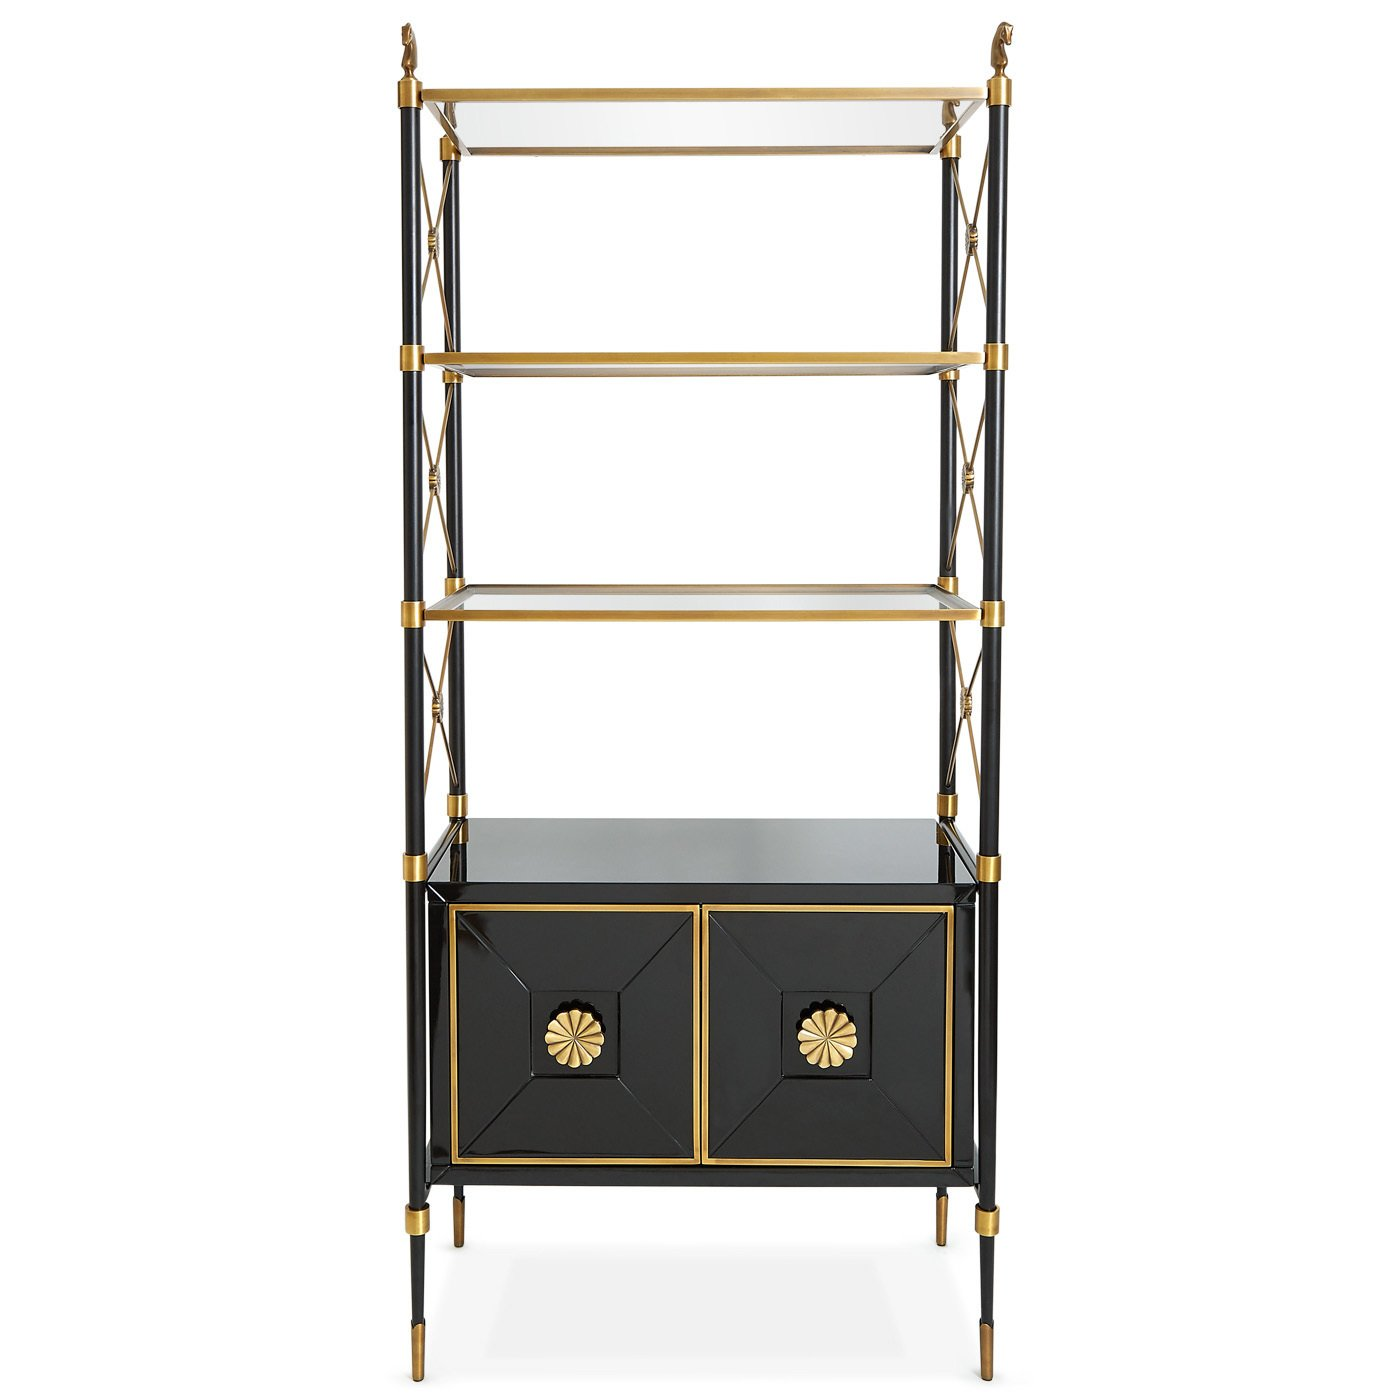 Jonathan Adler Rider Étagère ($2995)  Photo 4 of 18 in 9 Home Libraries We All Want to Curl Up in This Weekend